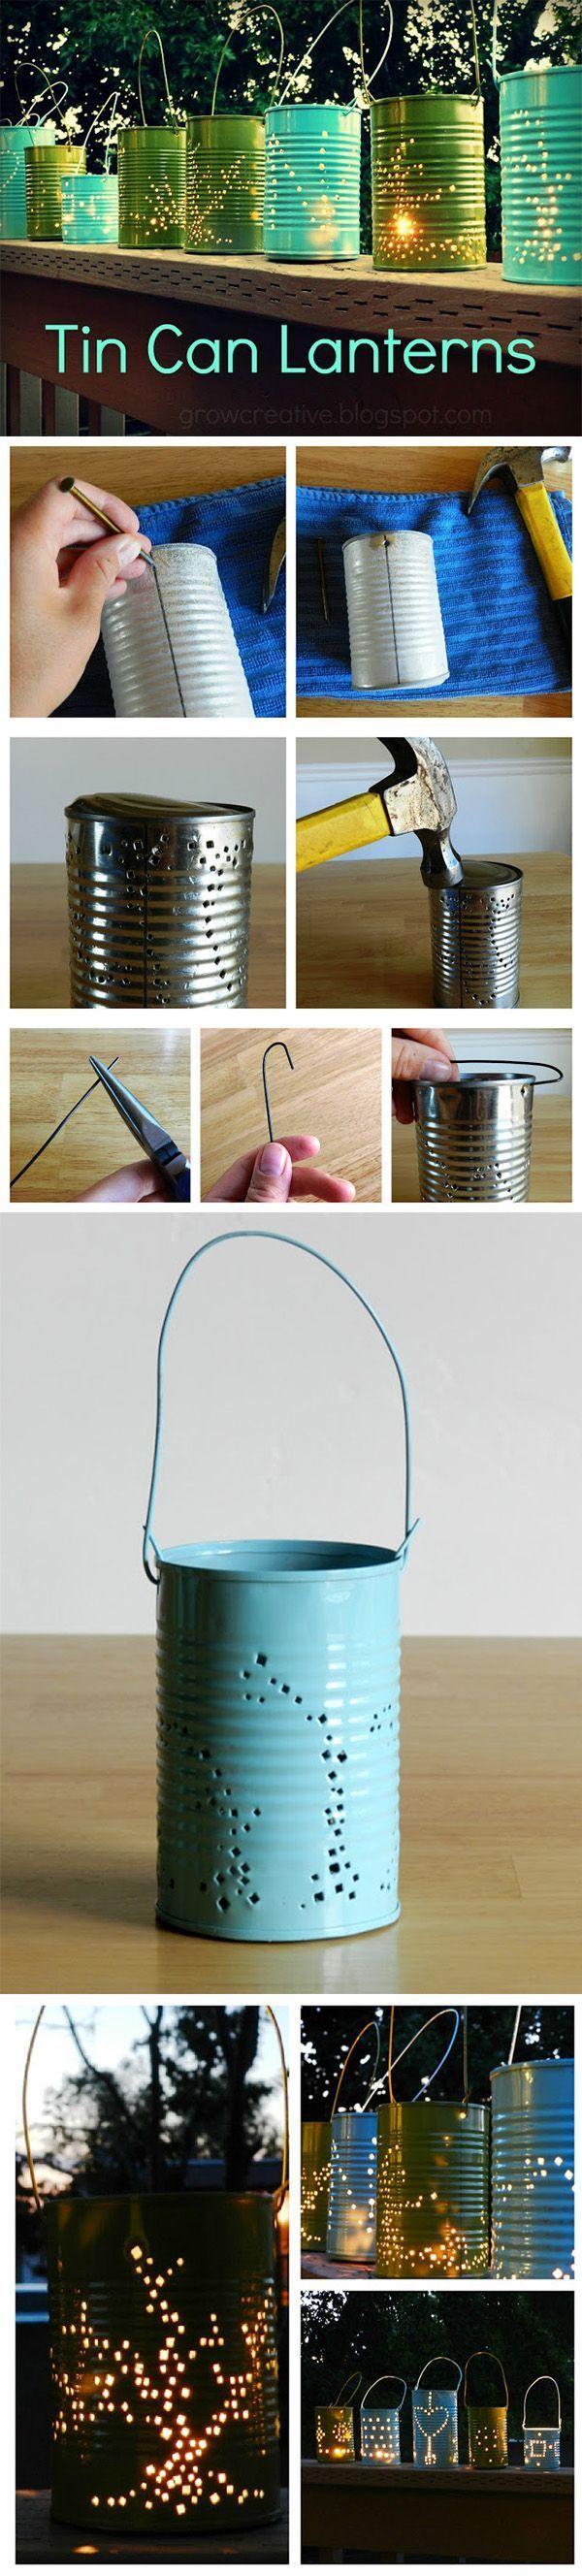 DIY tin can lanterns for country rustic wedding ideas: